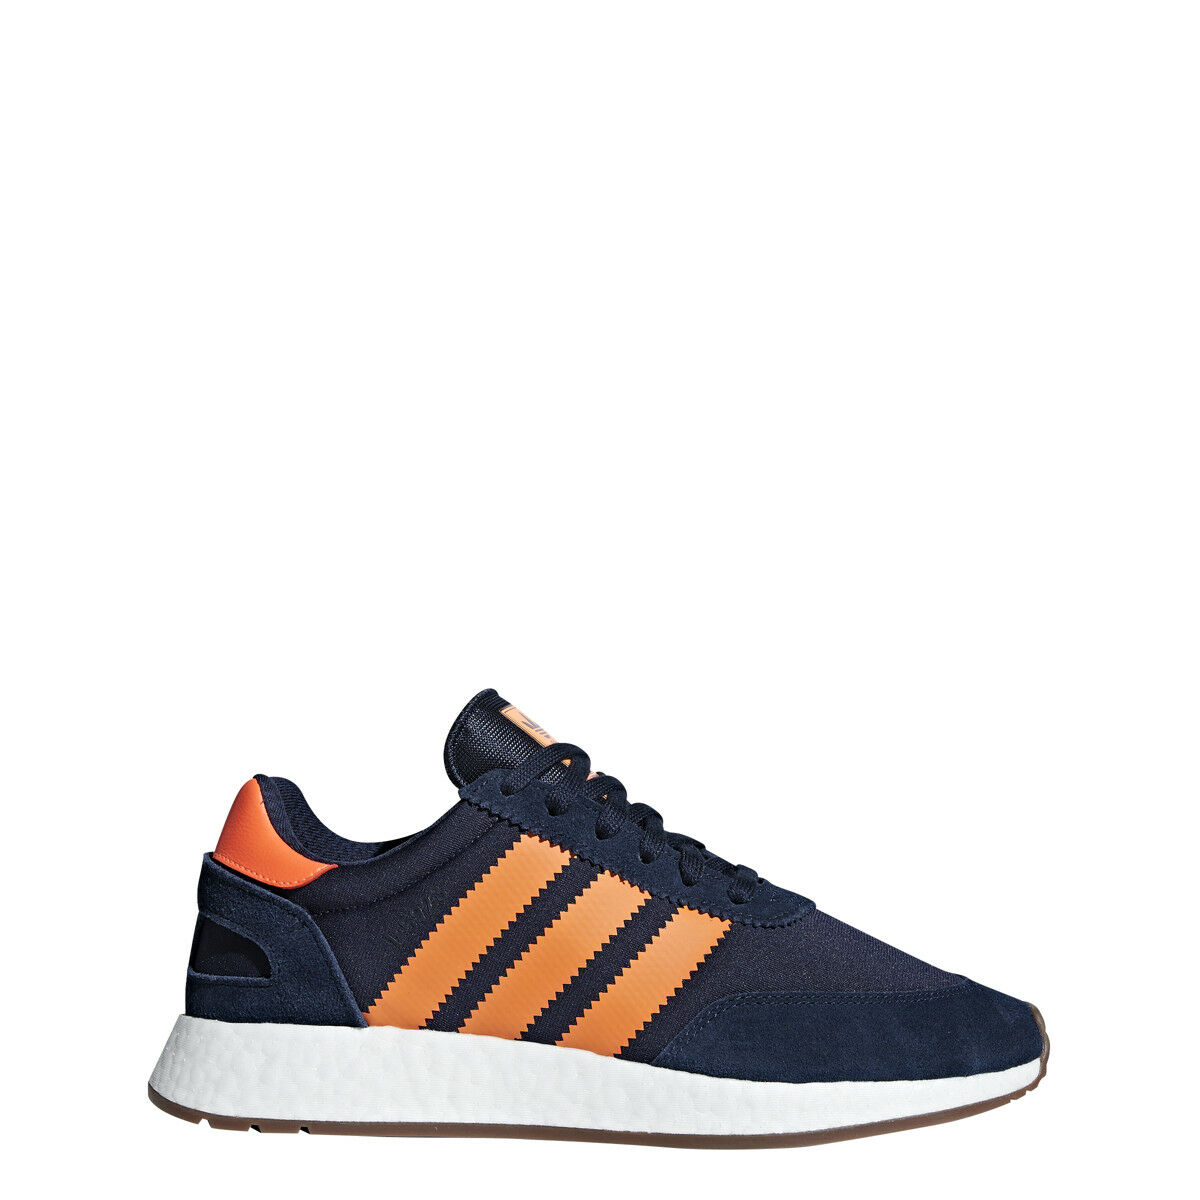 Adidas Mens I-5923 Navy orange Gum - B37919